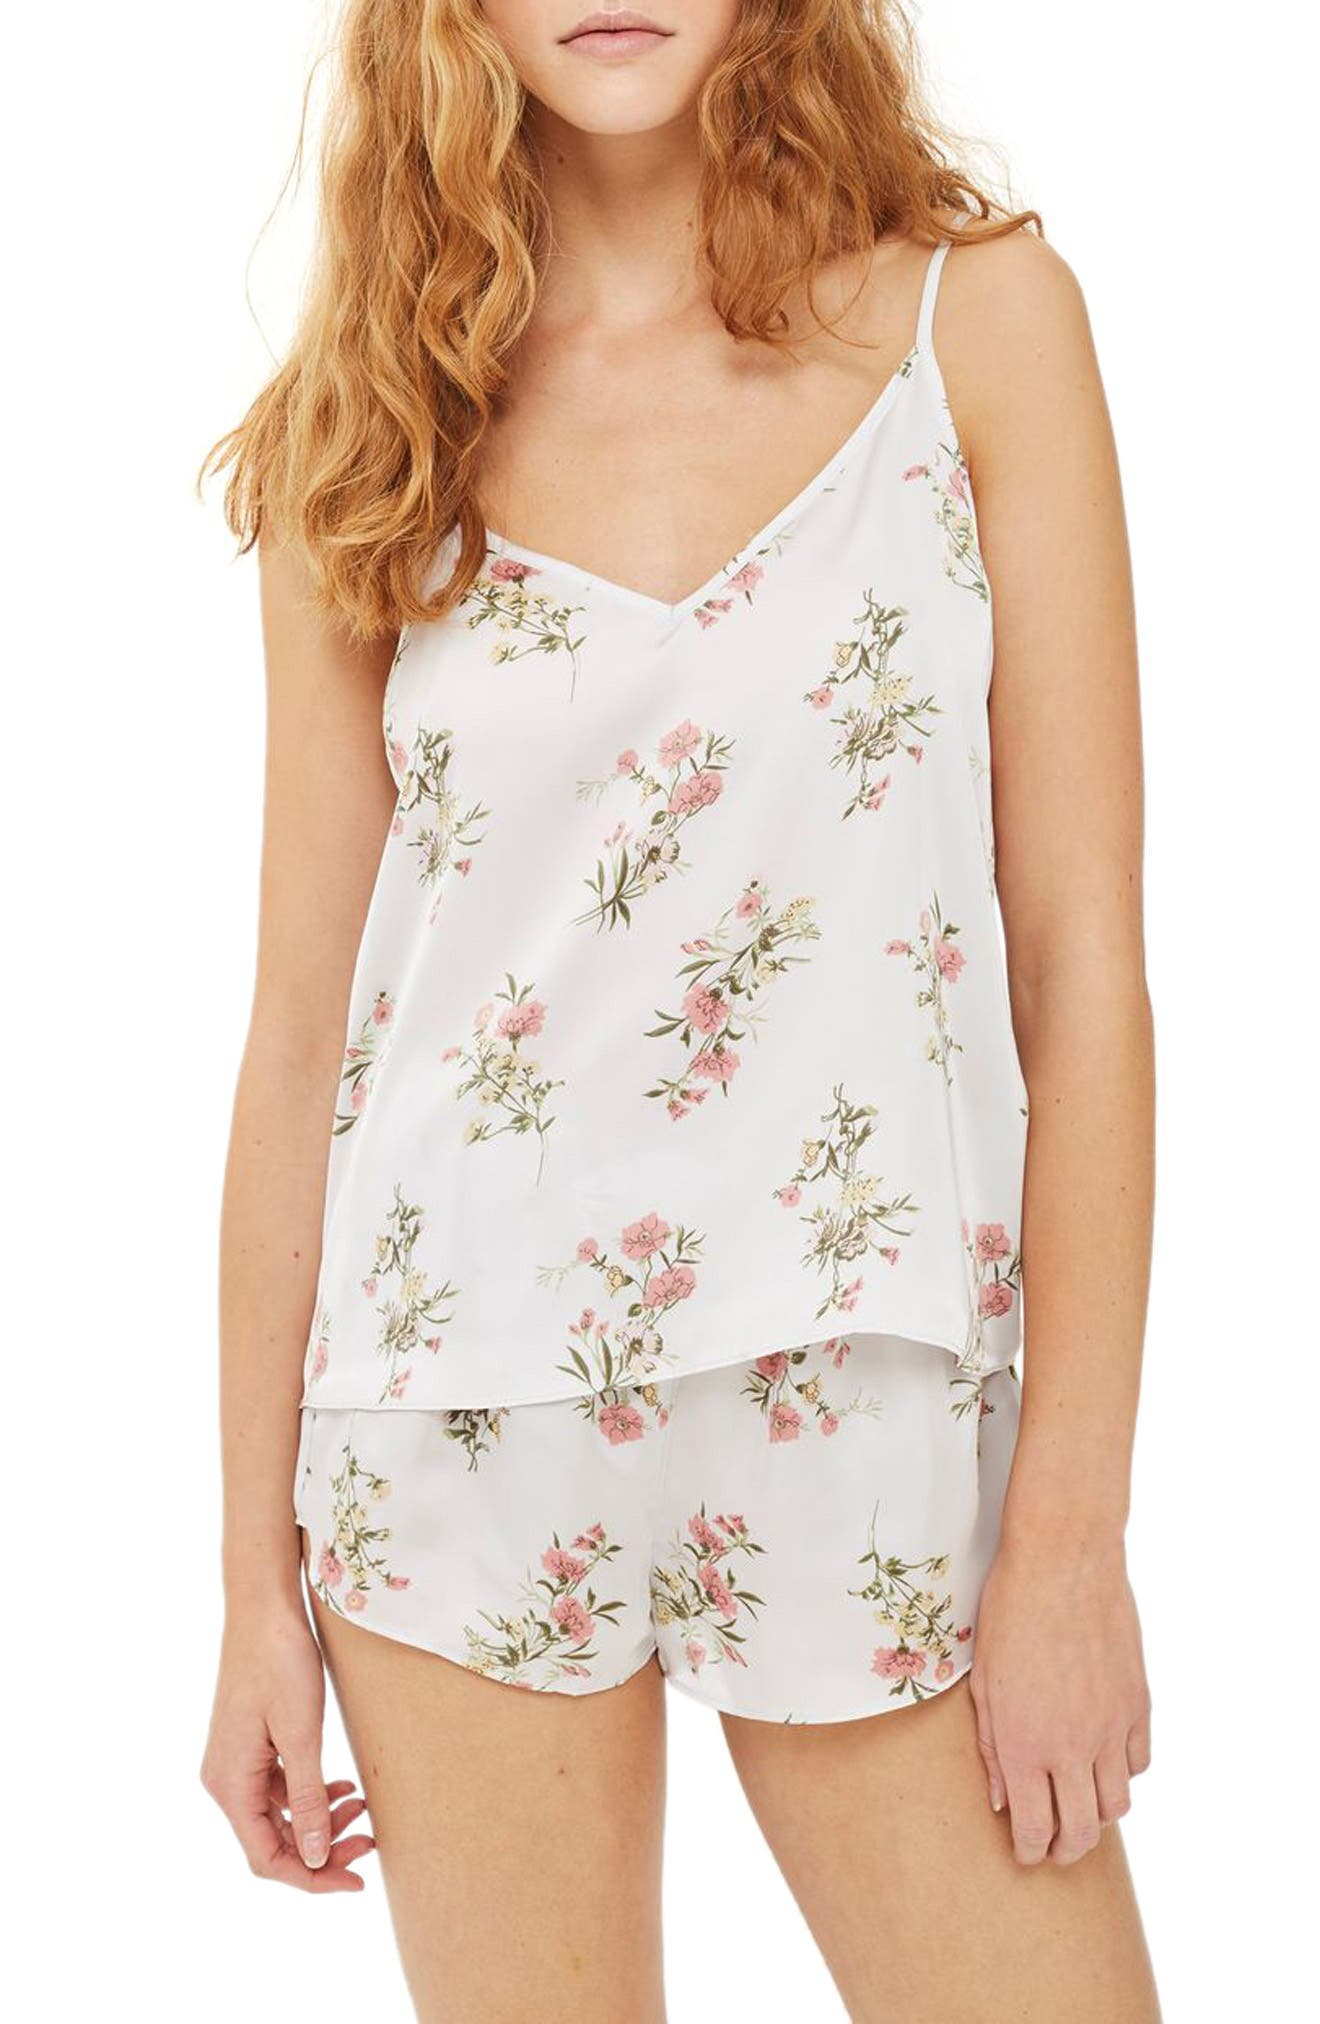 Garden Flower Camisole & Short Pajamas,                             Main thumbnail 1, color,                             900